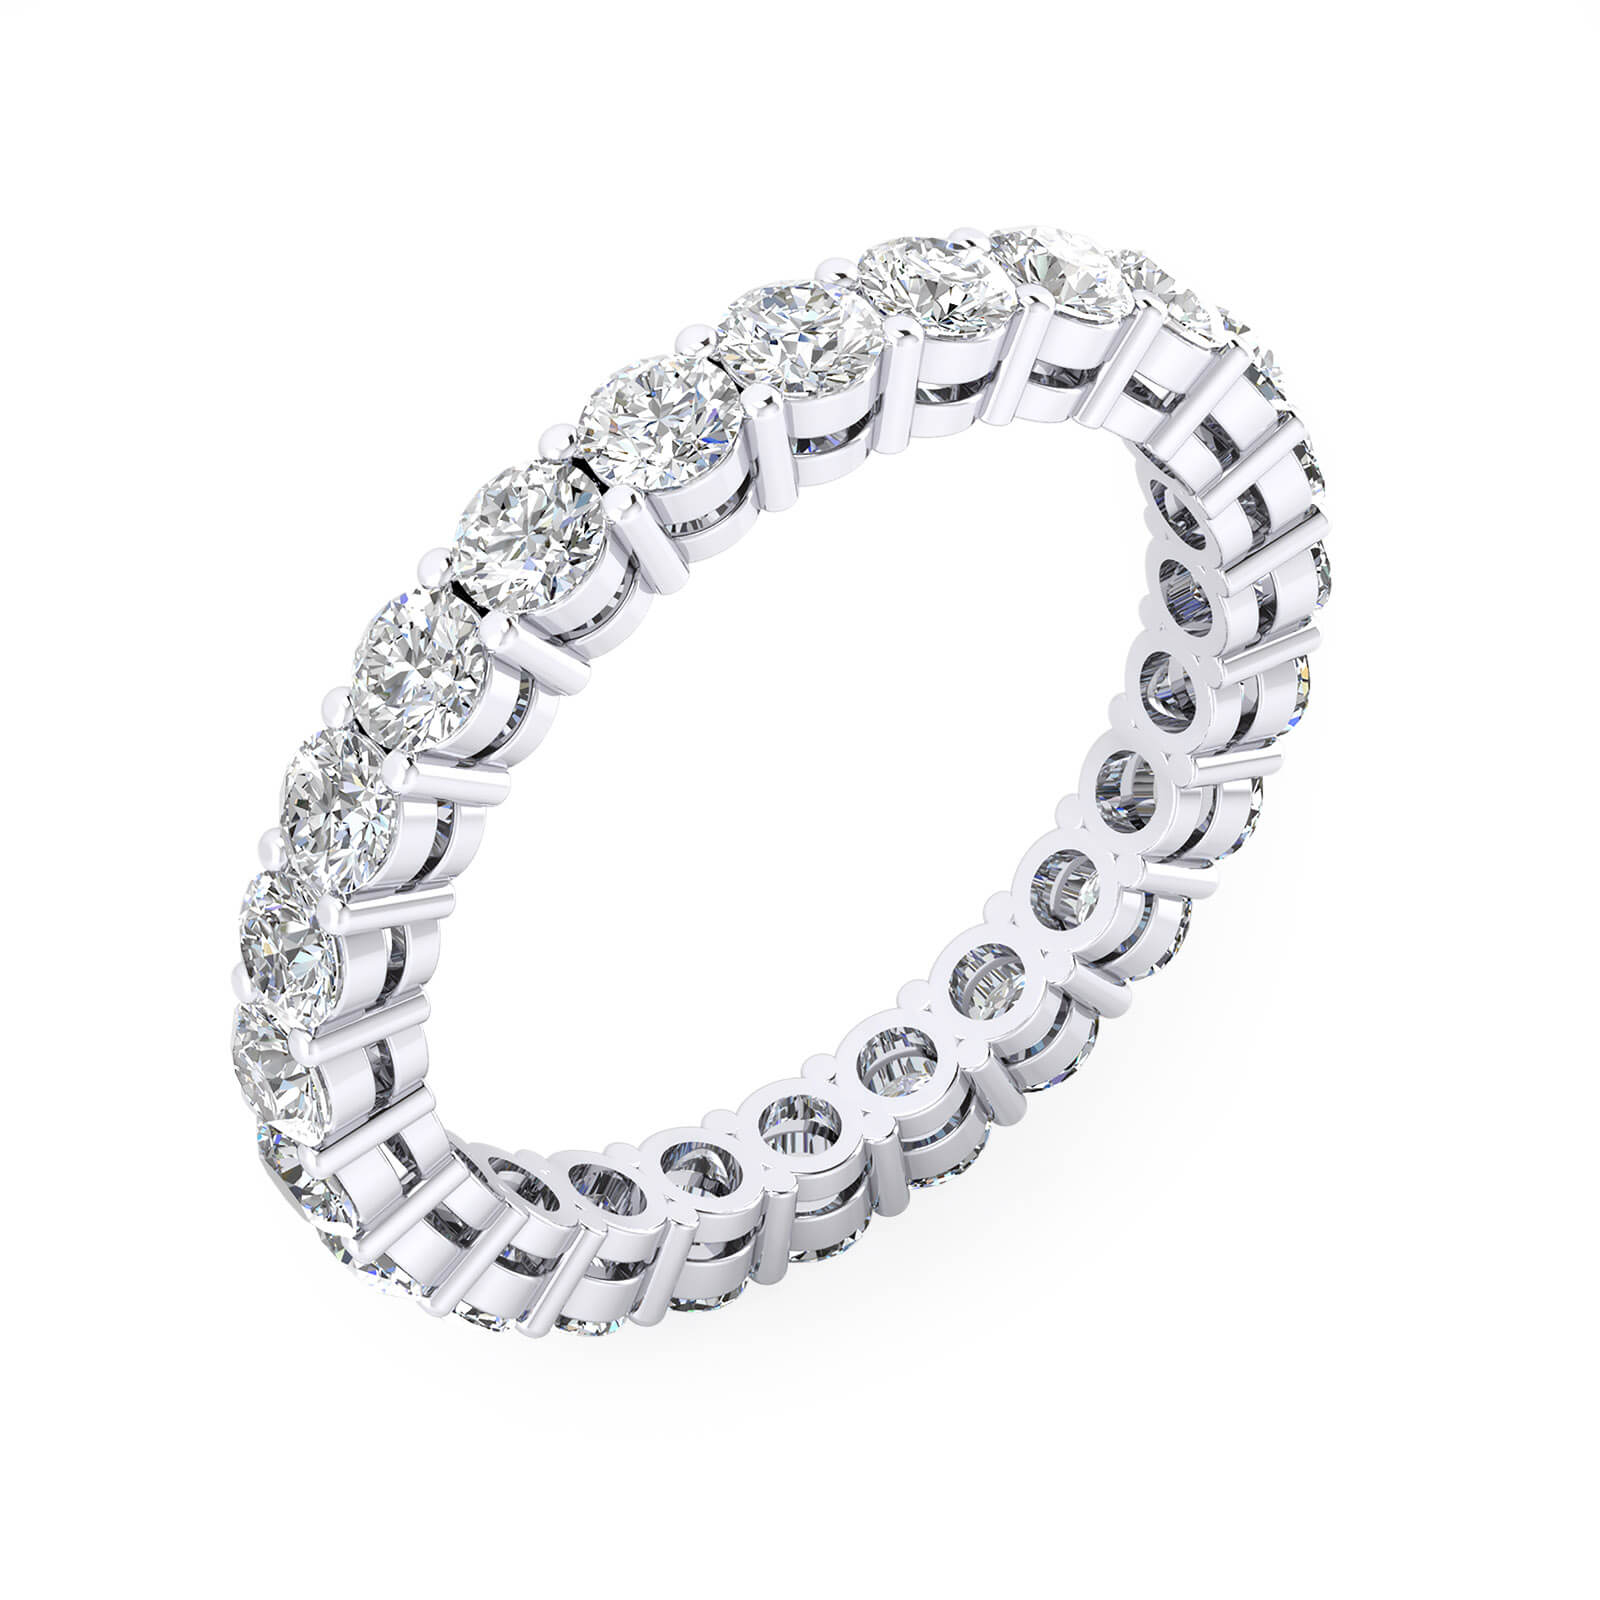 Aliances de casament or blanc 18k - Tria la mida dels diamants